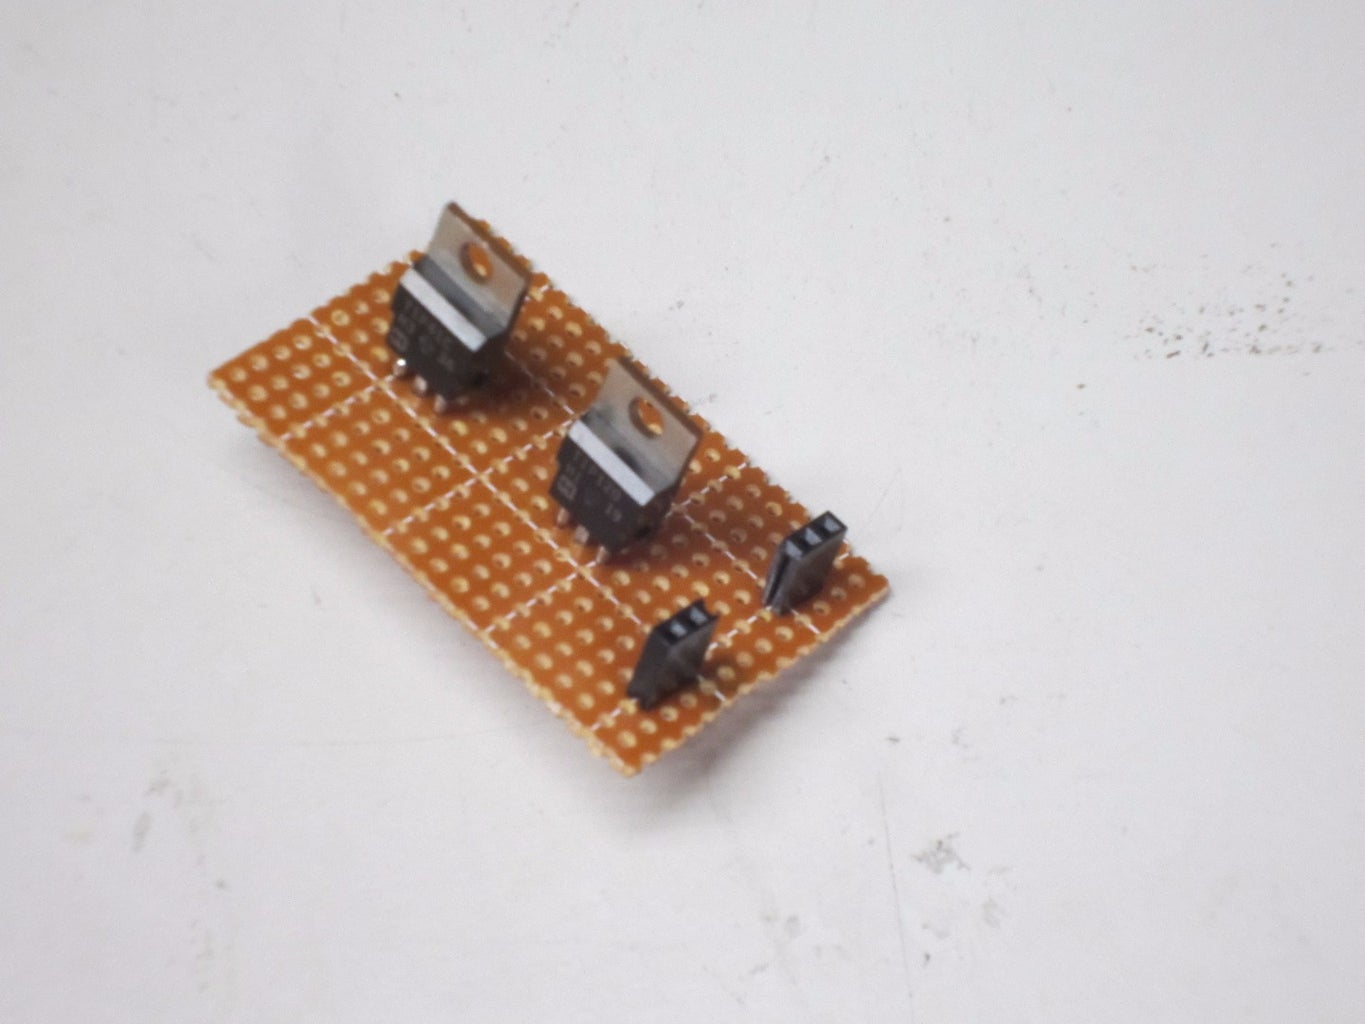 Solder the Small Female Headers